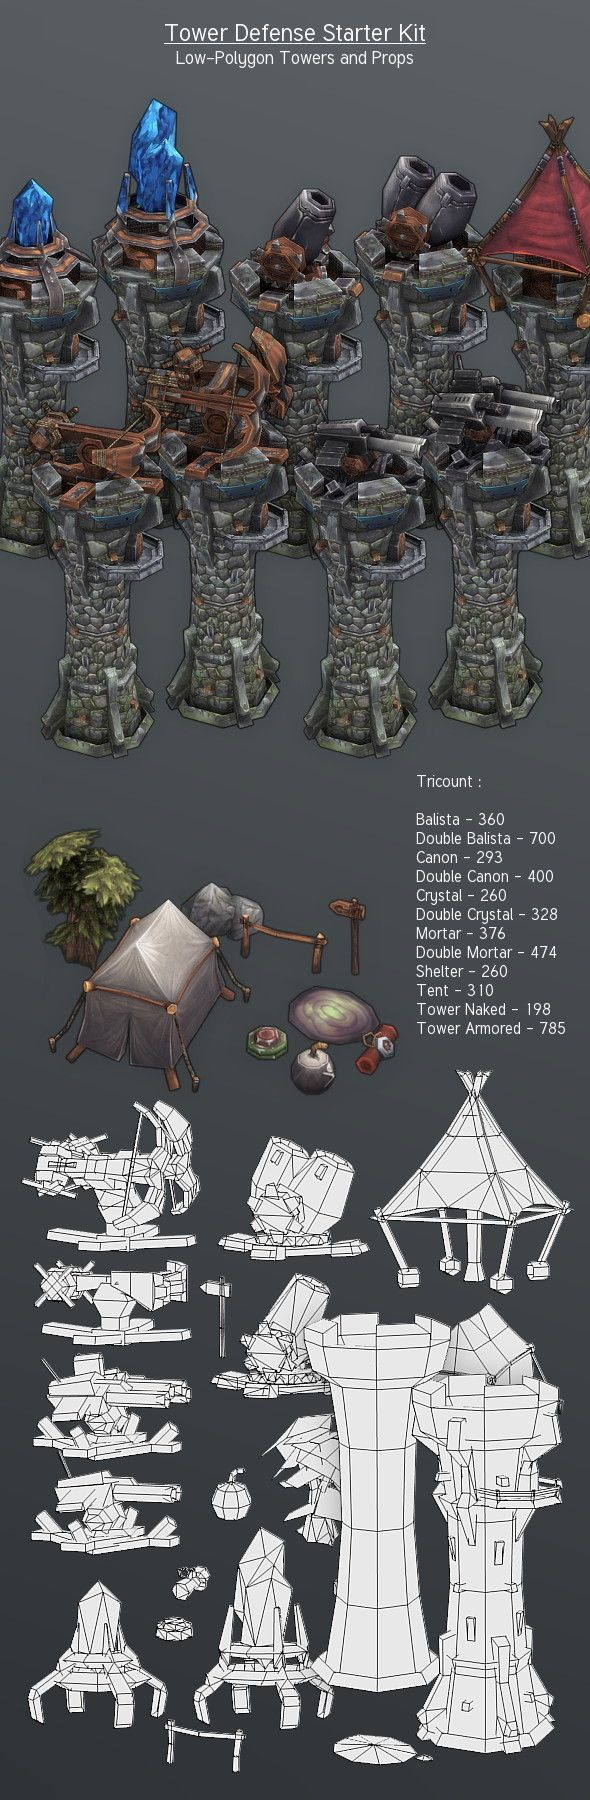 http://3docean.net/item/lowpoly-tower-defense-starter-kit/4390955?WT.ac=solid_search_thumb&WT.seg_1=solid_search_thumb&WT.z_author=Cremuss